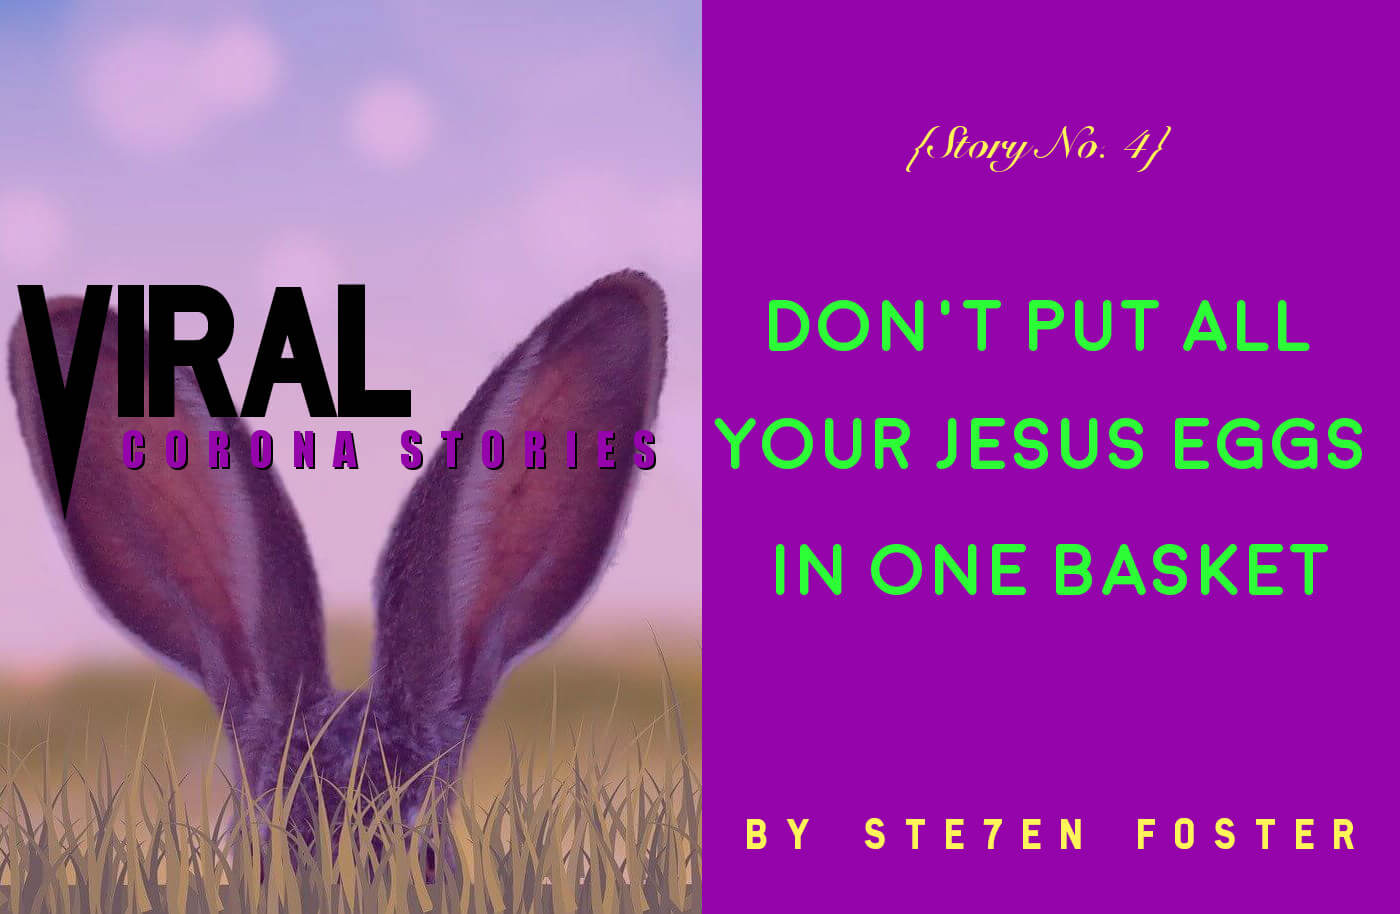 Viral/Don't Put All Your Jesus Eggs In One Basket